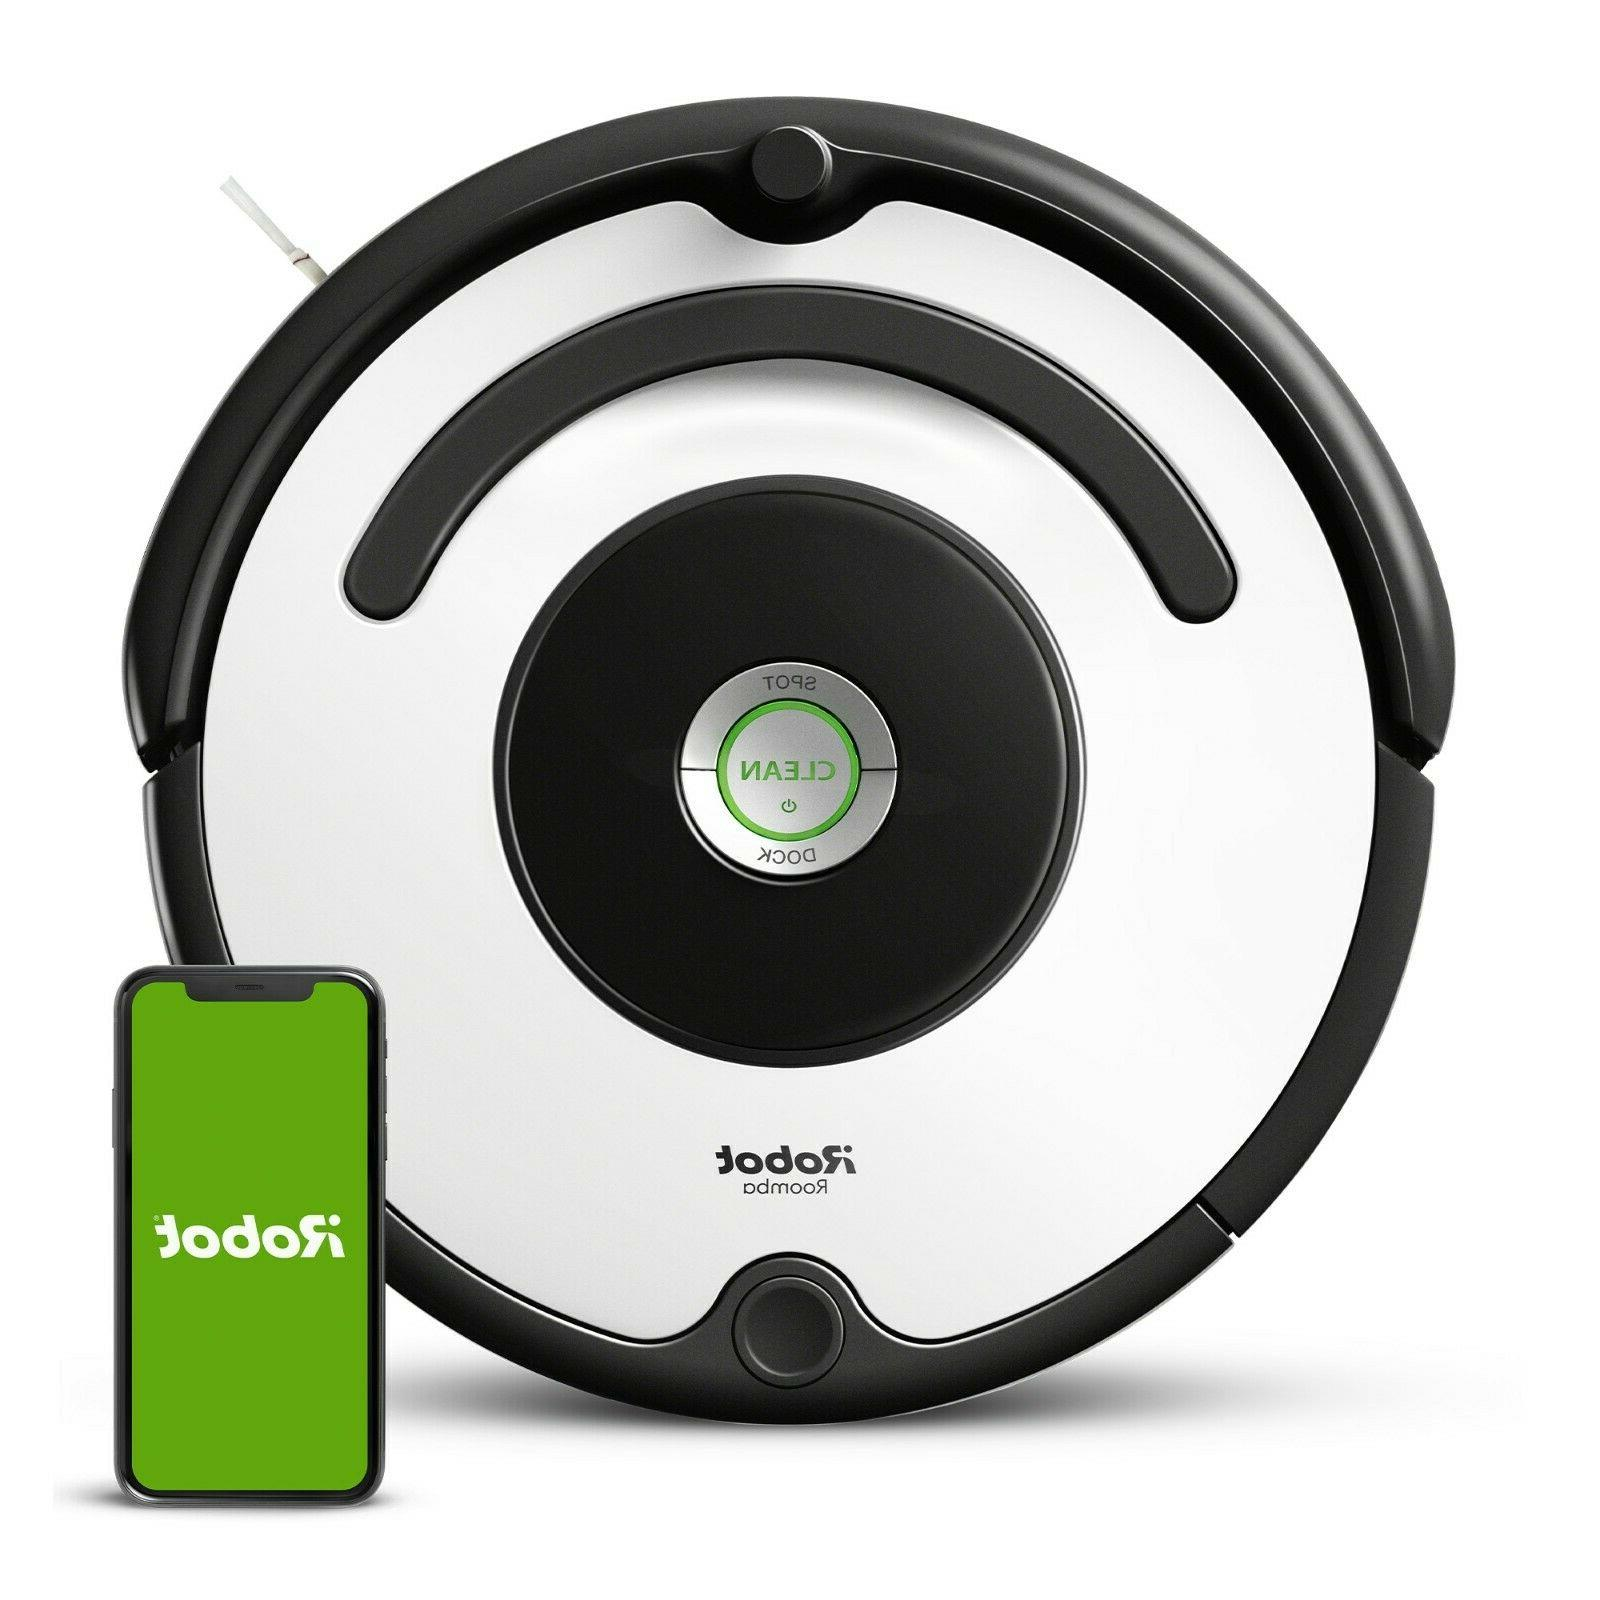 roomba 670 vacuum cleaning robot manufacturer certified